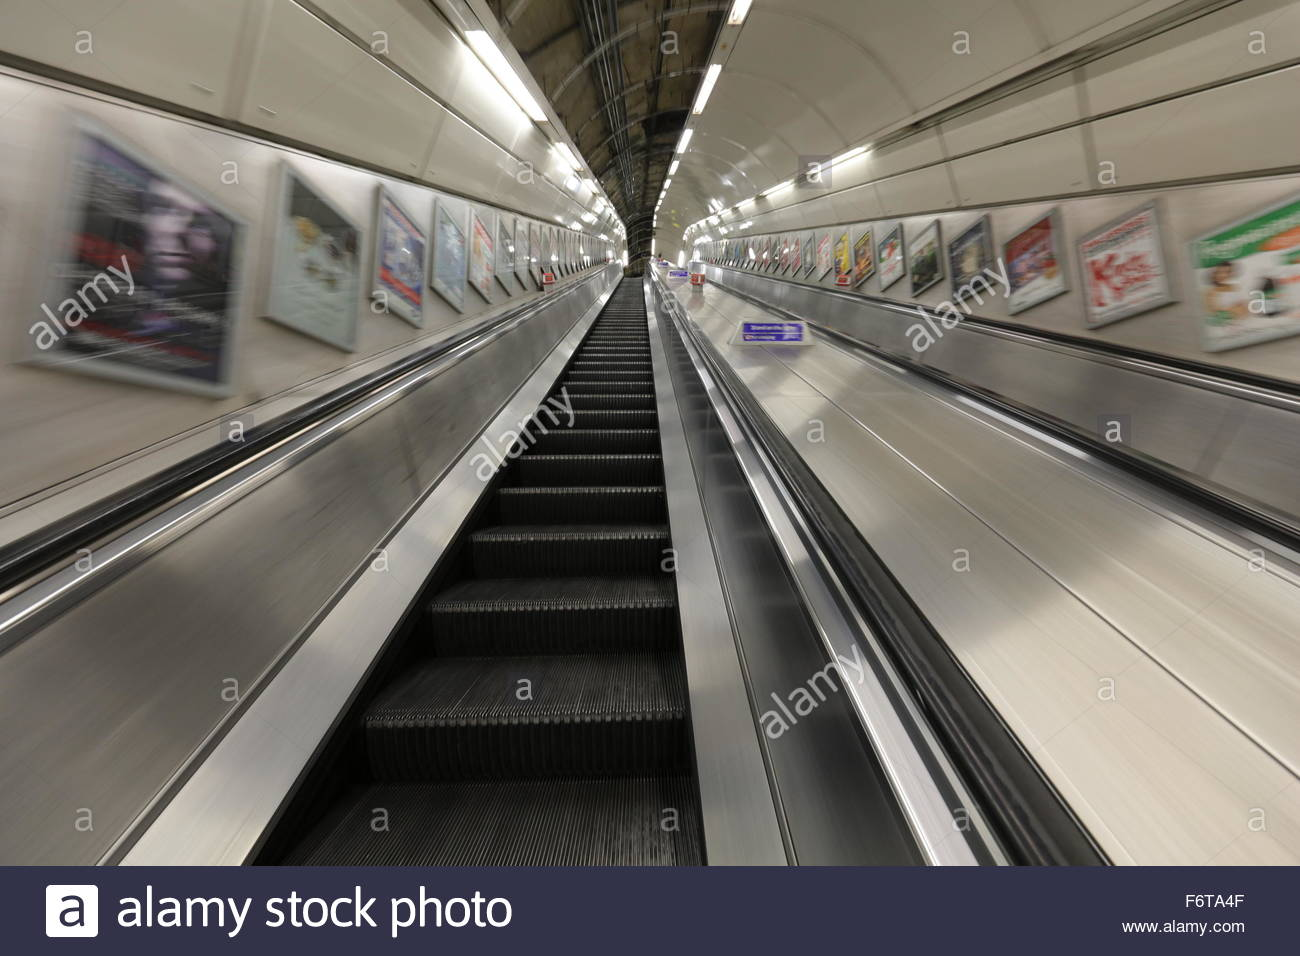 moving-stairs-walls-and-advertisement-motion-blurred-F6TA4F.jpg